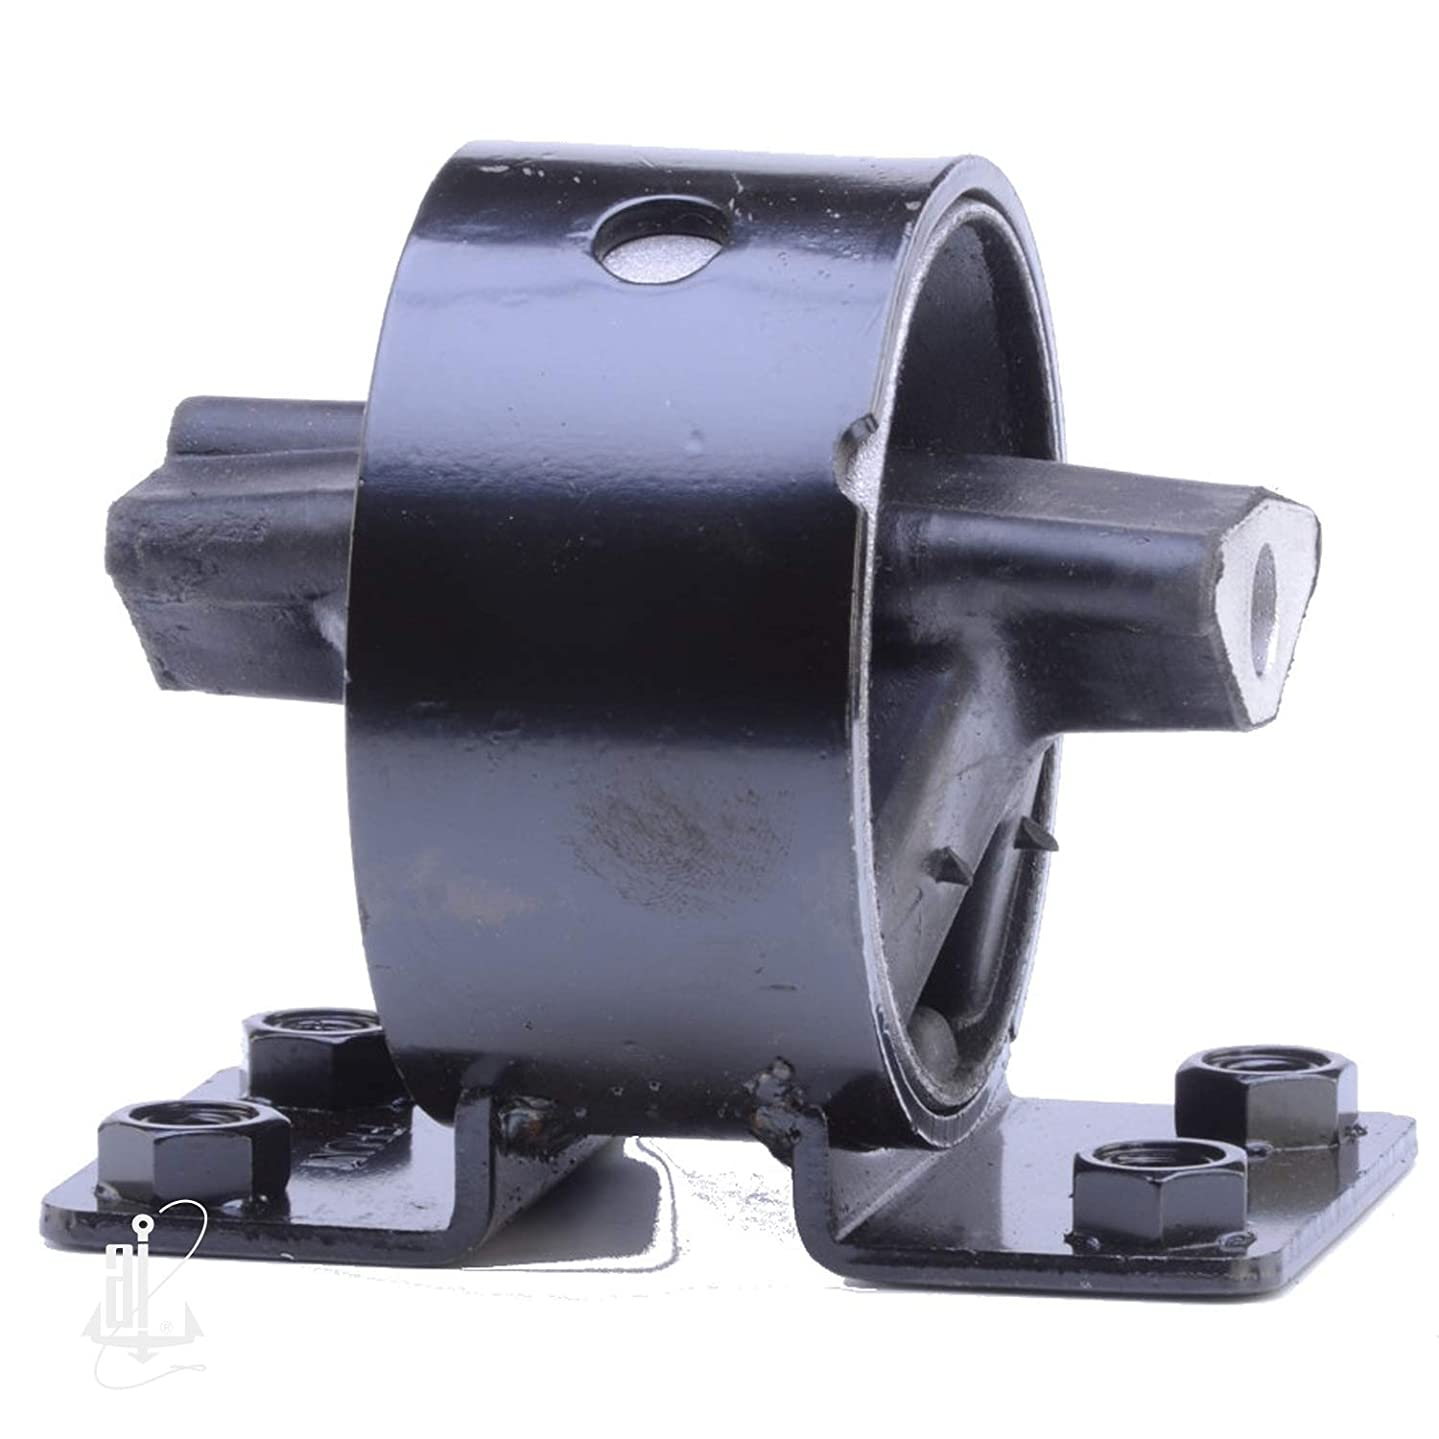 Anchor 2828 Transmission Mount